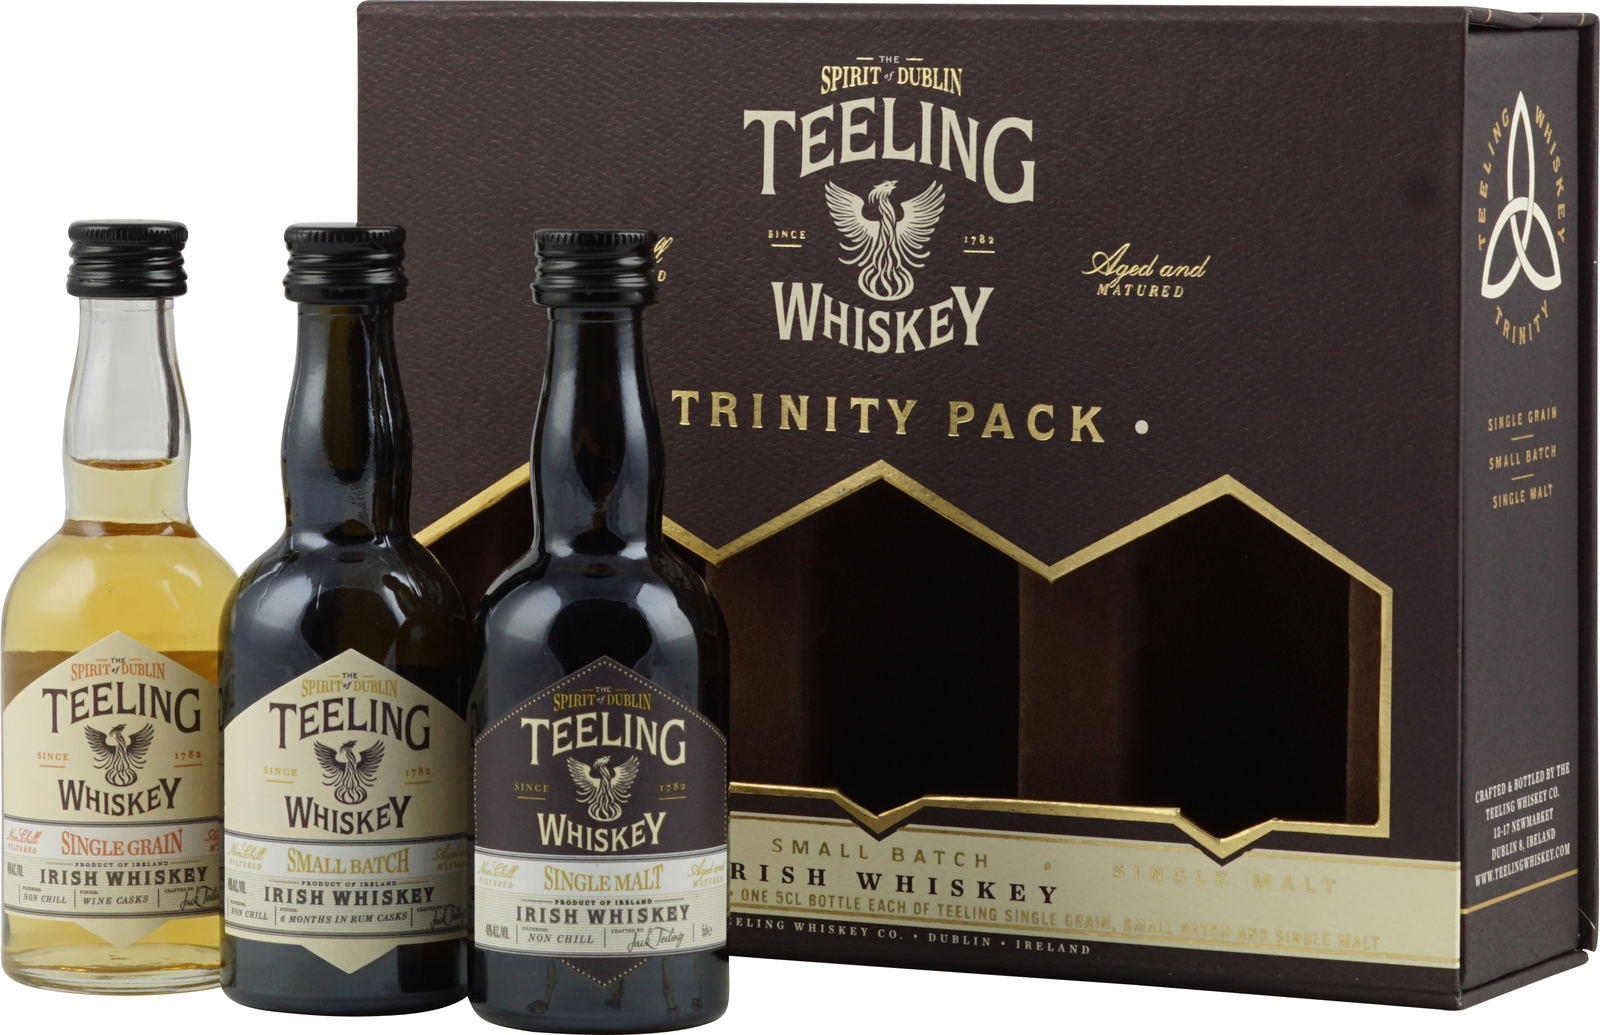 Image result for teeling whiskey trinity pack